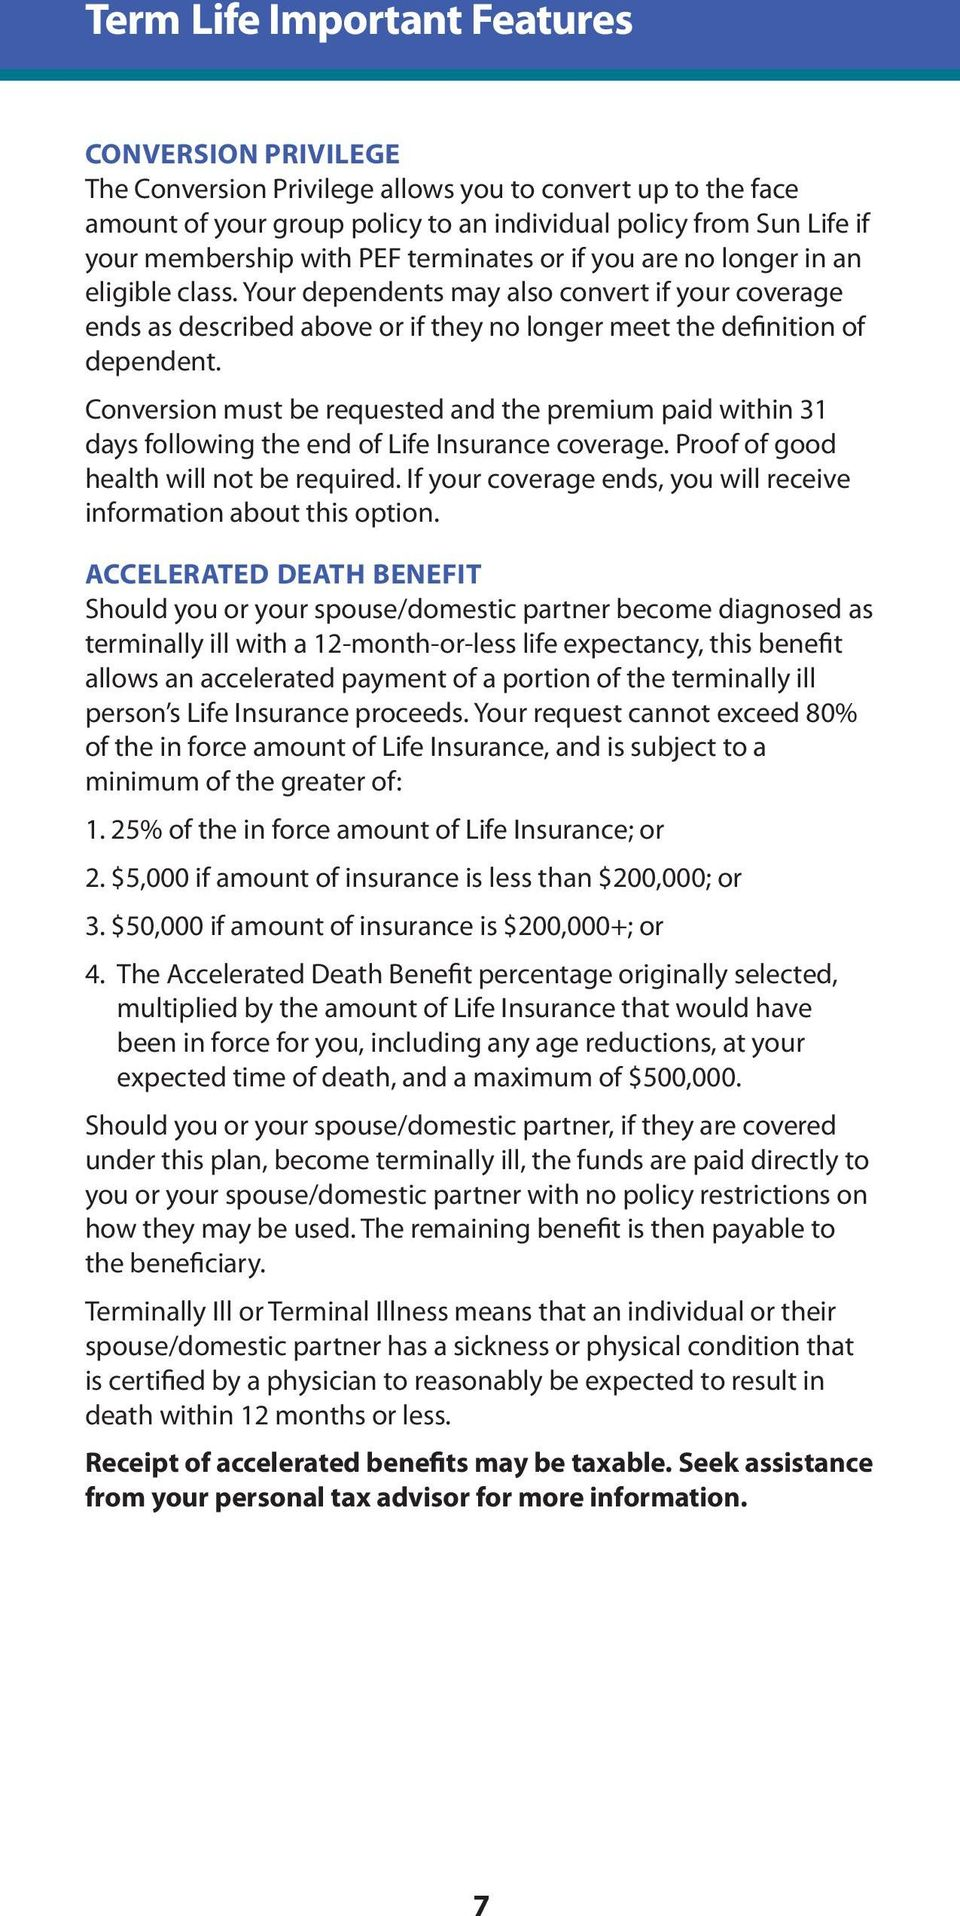 conversion must be requested and the premium paid within 31 days following the end of Life insurance coverage. proof of good health will not be required.